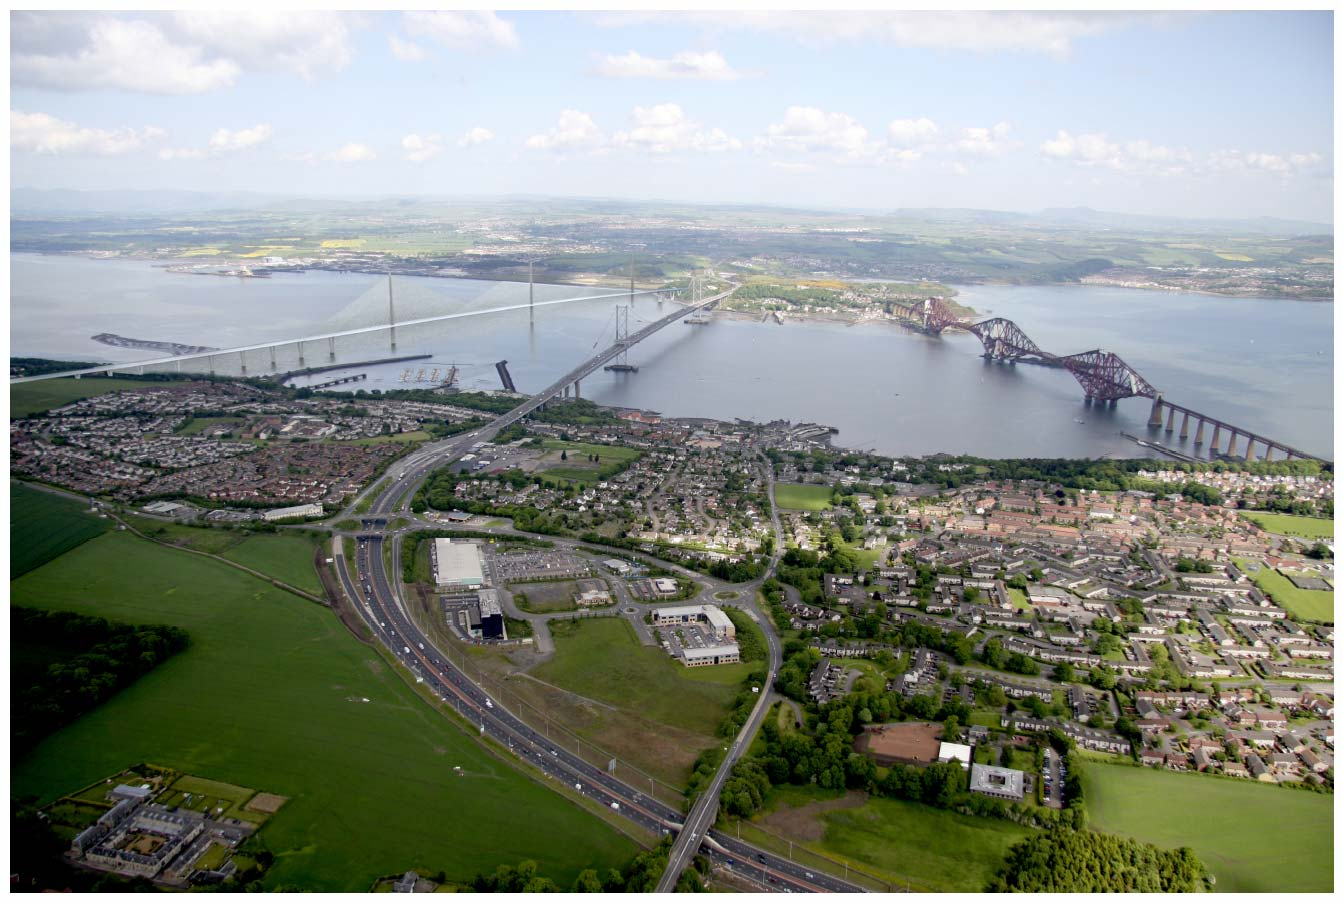 Mono-Tower viewed from above South Queensferry